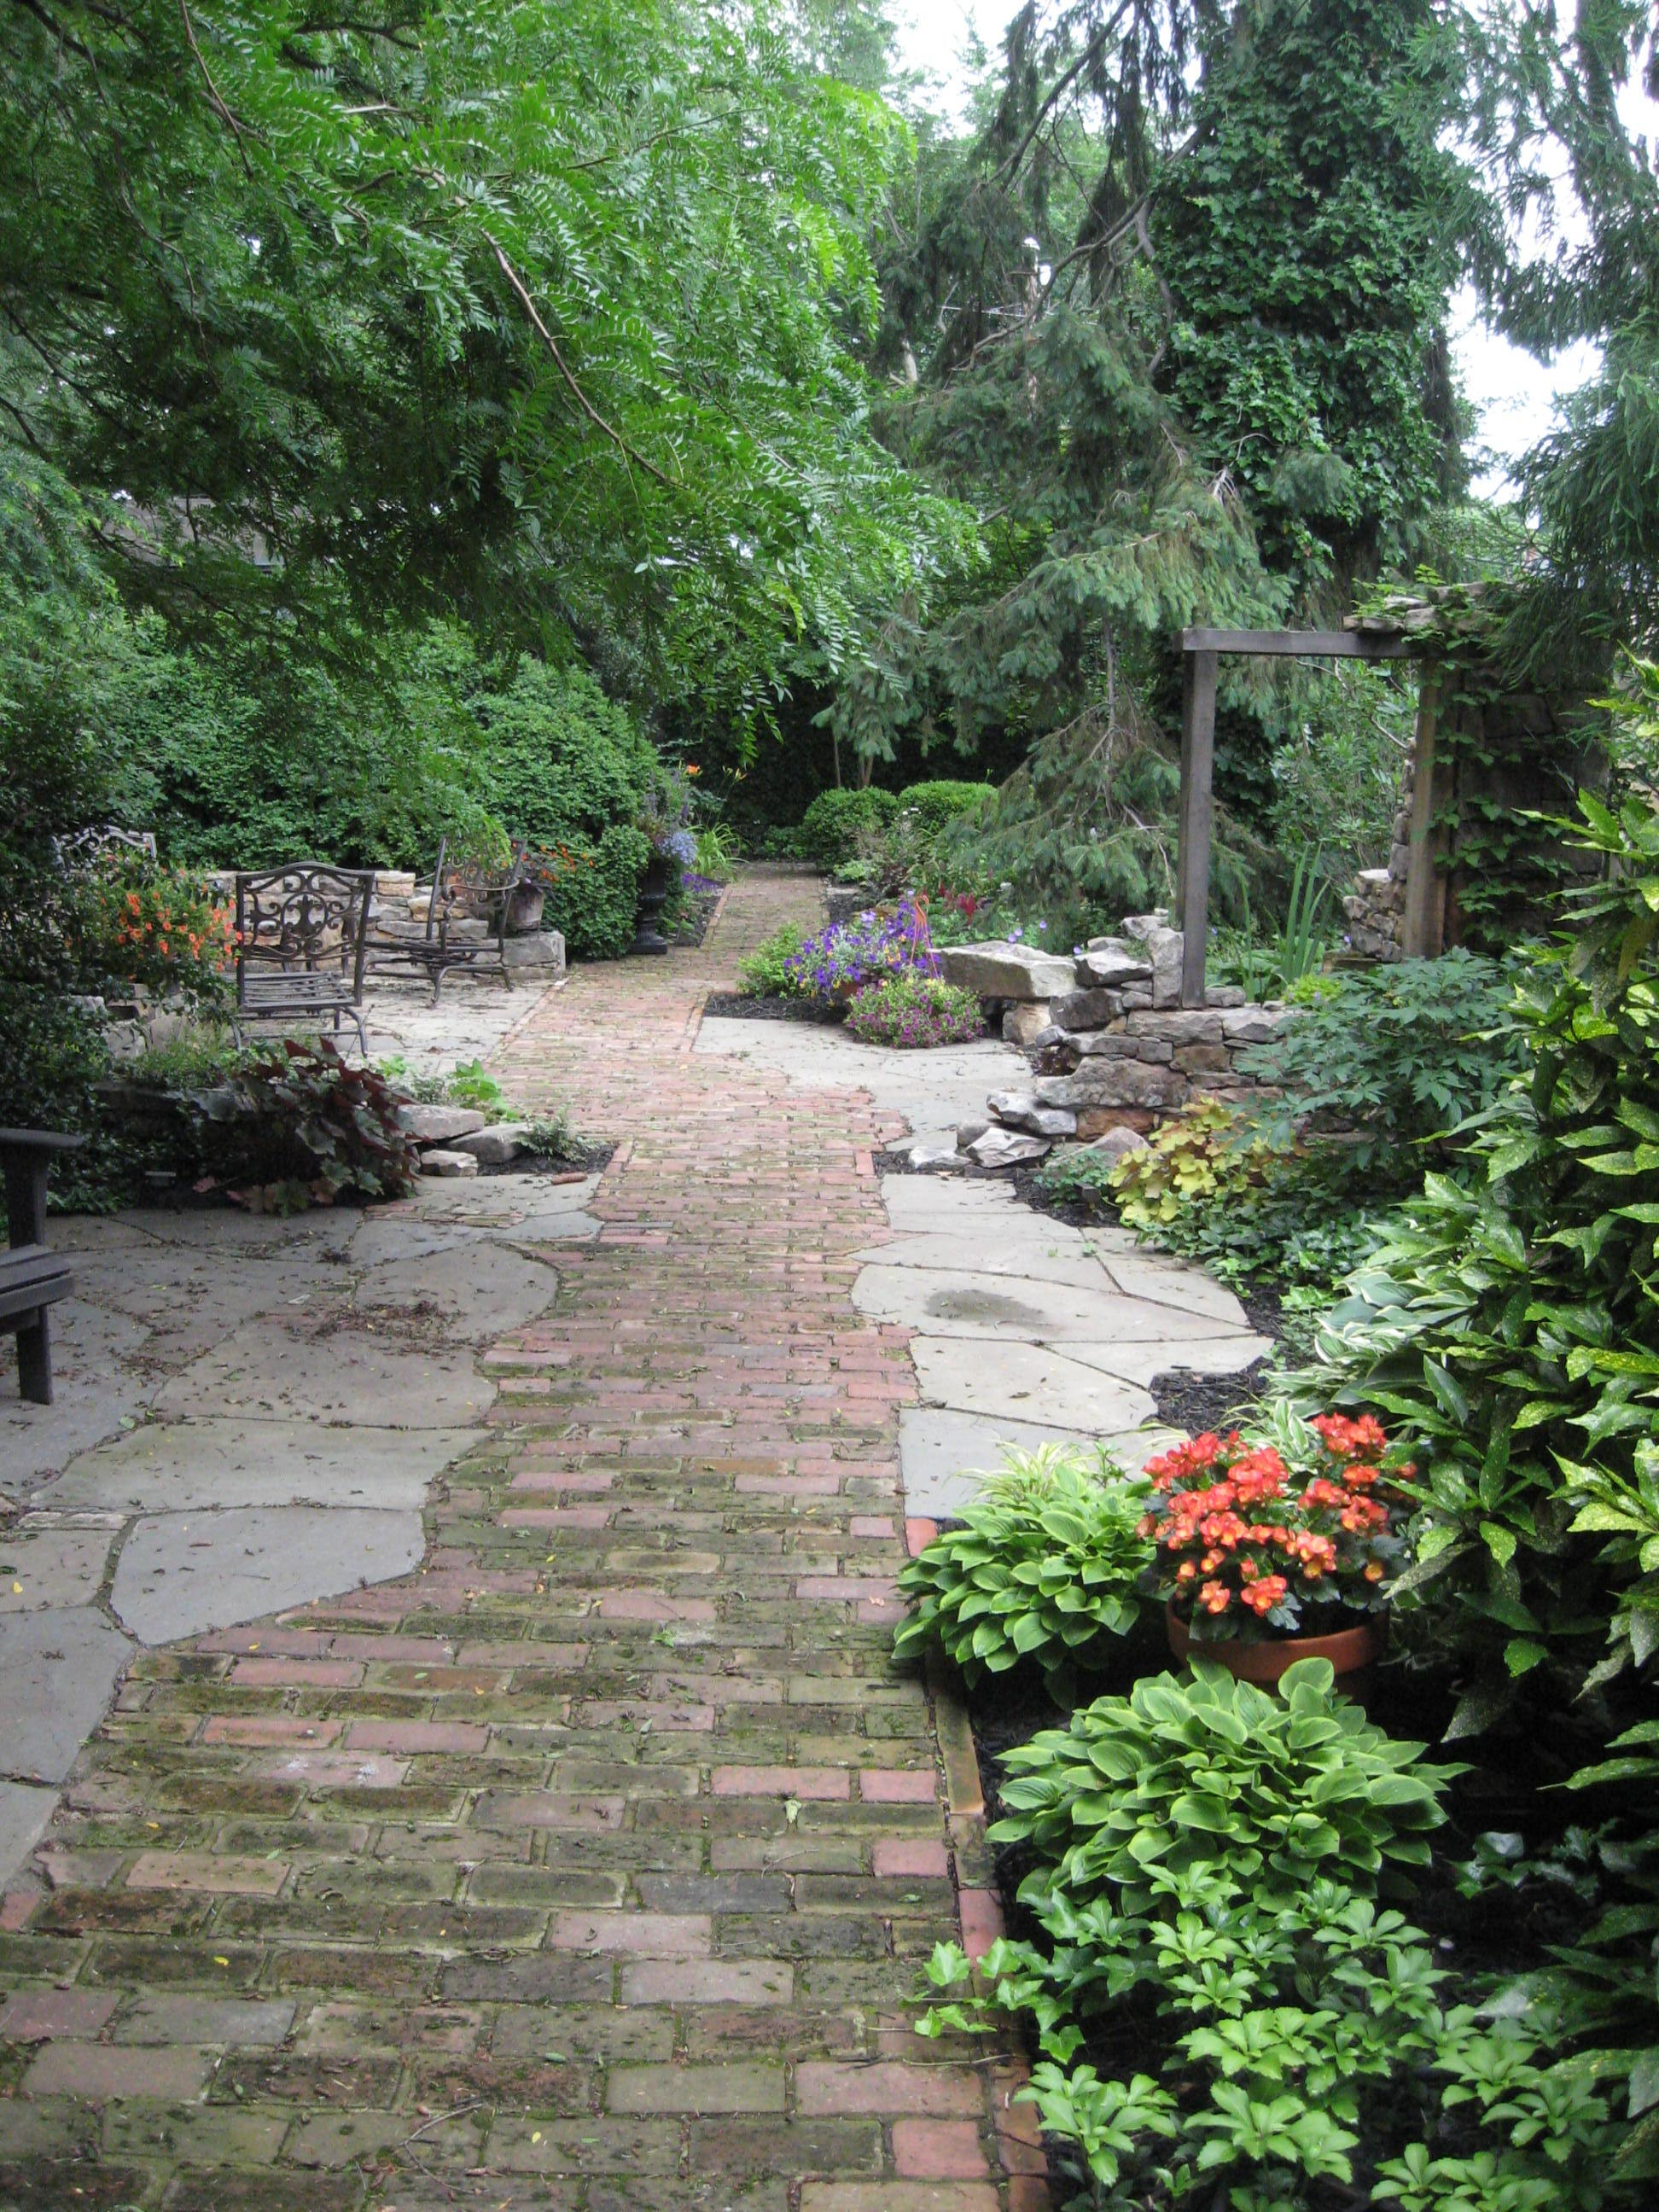 The Rustic Elegance of a Brick path through stone patios